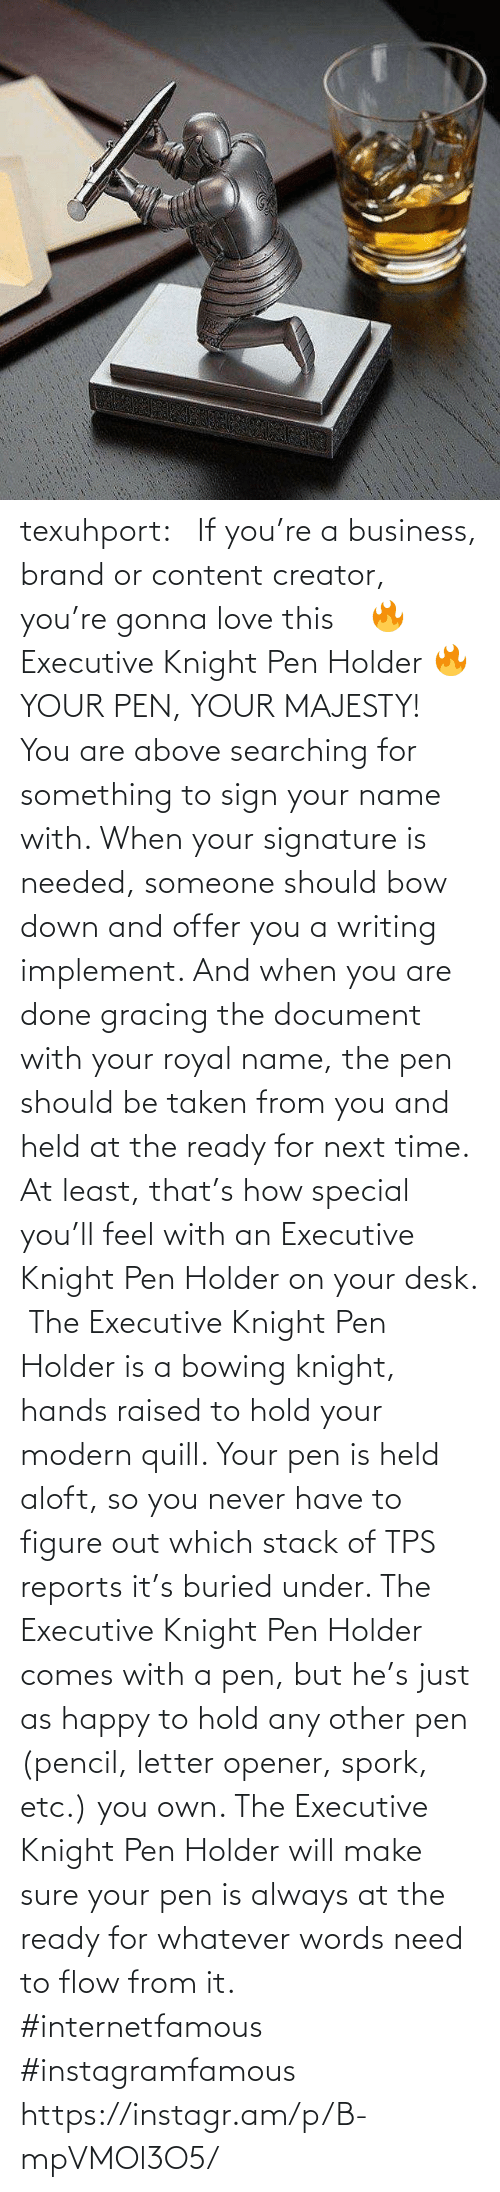 sure: texuhport:⎆ If you're a business, brand or content creator, you're gonna love this ⎆⁣ 🔥 Executive Knight Pen Holder 🔥⁣ YOUR PEN, YOUR MAJESTY!⁣ ⁣ You are above searching for something to sign your name with. When your signature is needed, someone should bow down and offer you a writing implement. And when you are done gracing the document with your royal name, the pen should be taken from you and held at the ready for next time. At least, that's how special you'll feel with an Executive Knight Pen Holder on your desk.⁣ ⁣ The Executive Knight Pen Holder is a bowing knight, hands raised to hold your modern quill. Your pen is held aloft, so you never have to figure out which stack of TPS reports it's buried under. The Executive Knight Pen Holder comes with a pen, but he's just as happy to hold any other pen (pencil, letter opener, spork, etc.) you own. The Executive Knight Pen Holder will make sure your pen is always at the ready for whatever words need to flow from it.⁣ #internetfamous  #instagramfamous https://instagr.am/p/B-mpVMOl3O5/